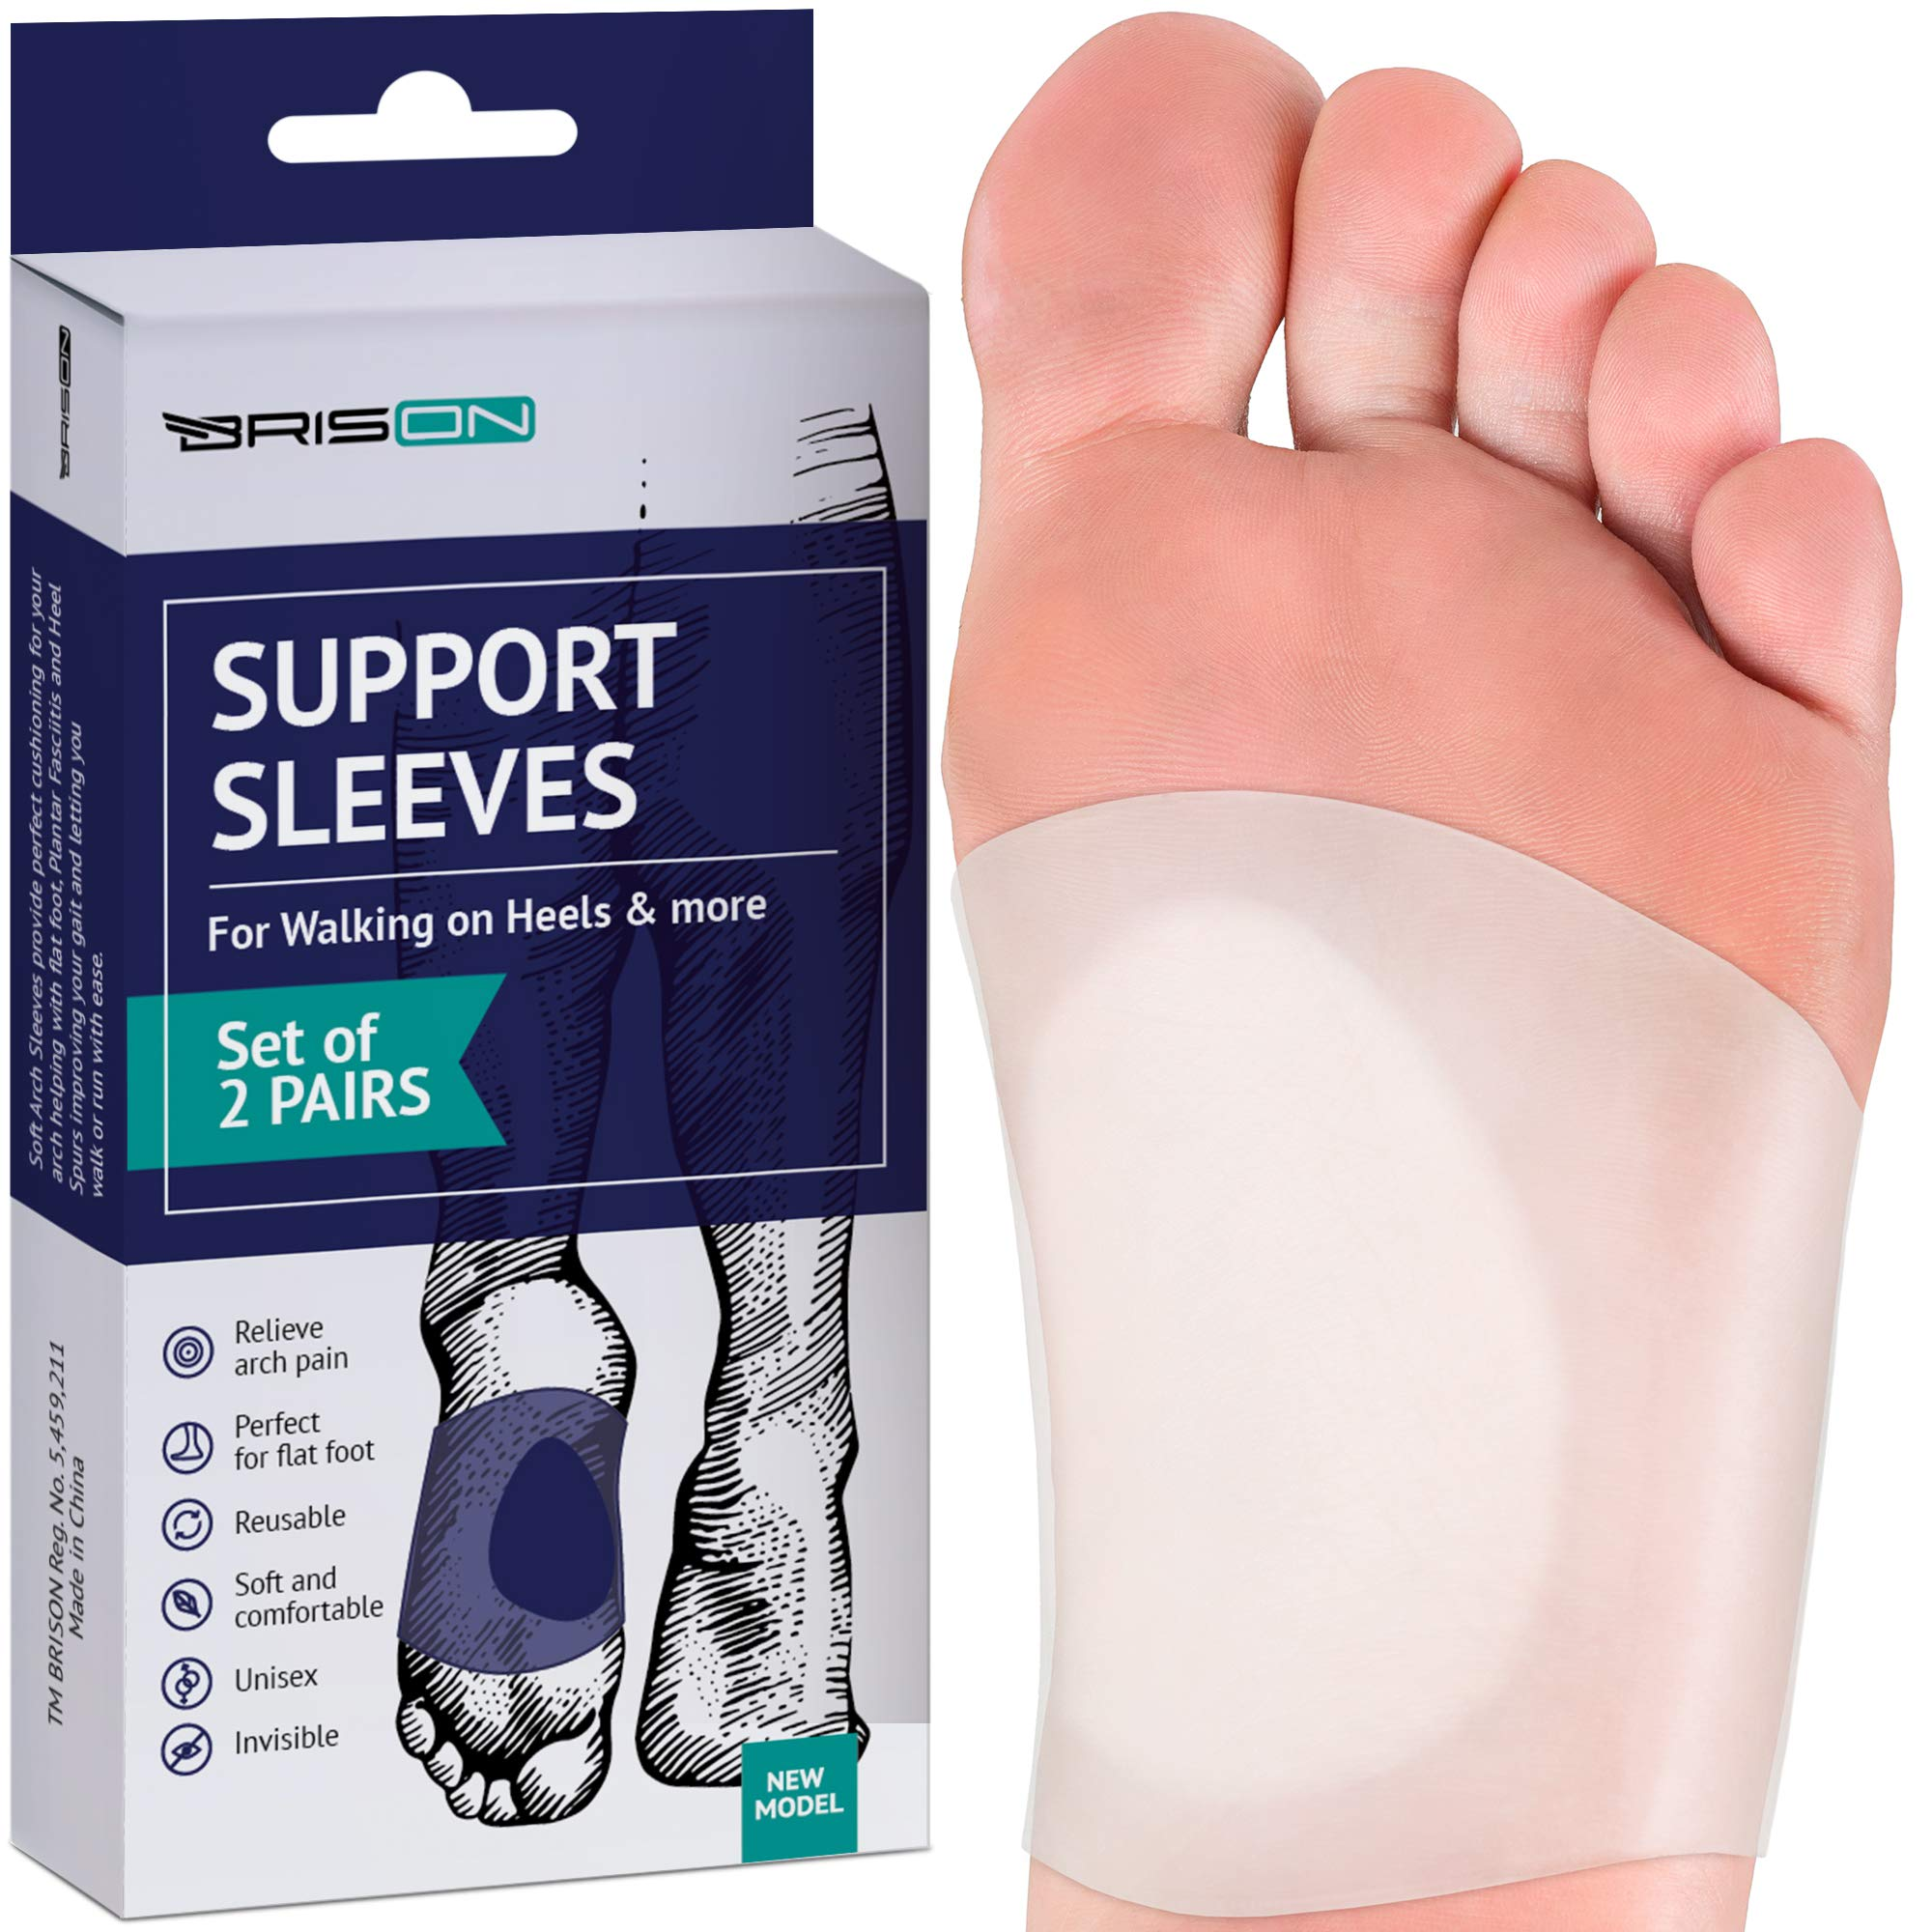 Gel Arch Support Set - Soft Silicone Clear Reusable Arch Sleeves for Flat Foot Pain Relief Plantar Fasciitis Support Cushioned Arch and Heel Spurs - Women Men - Large M5-13 / W7-14 by BRISON